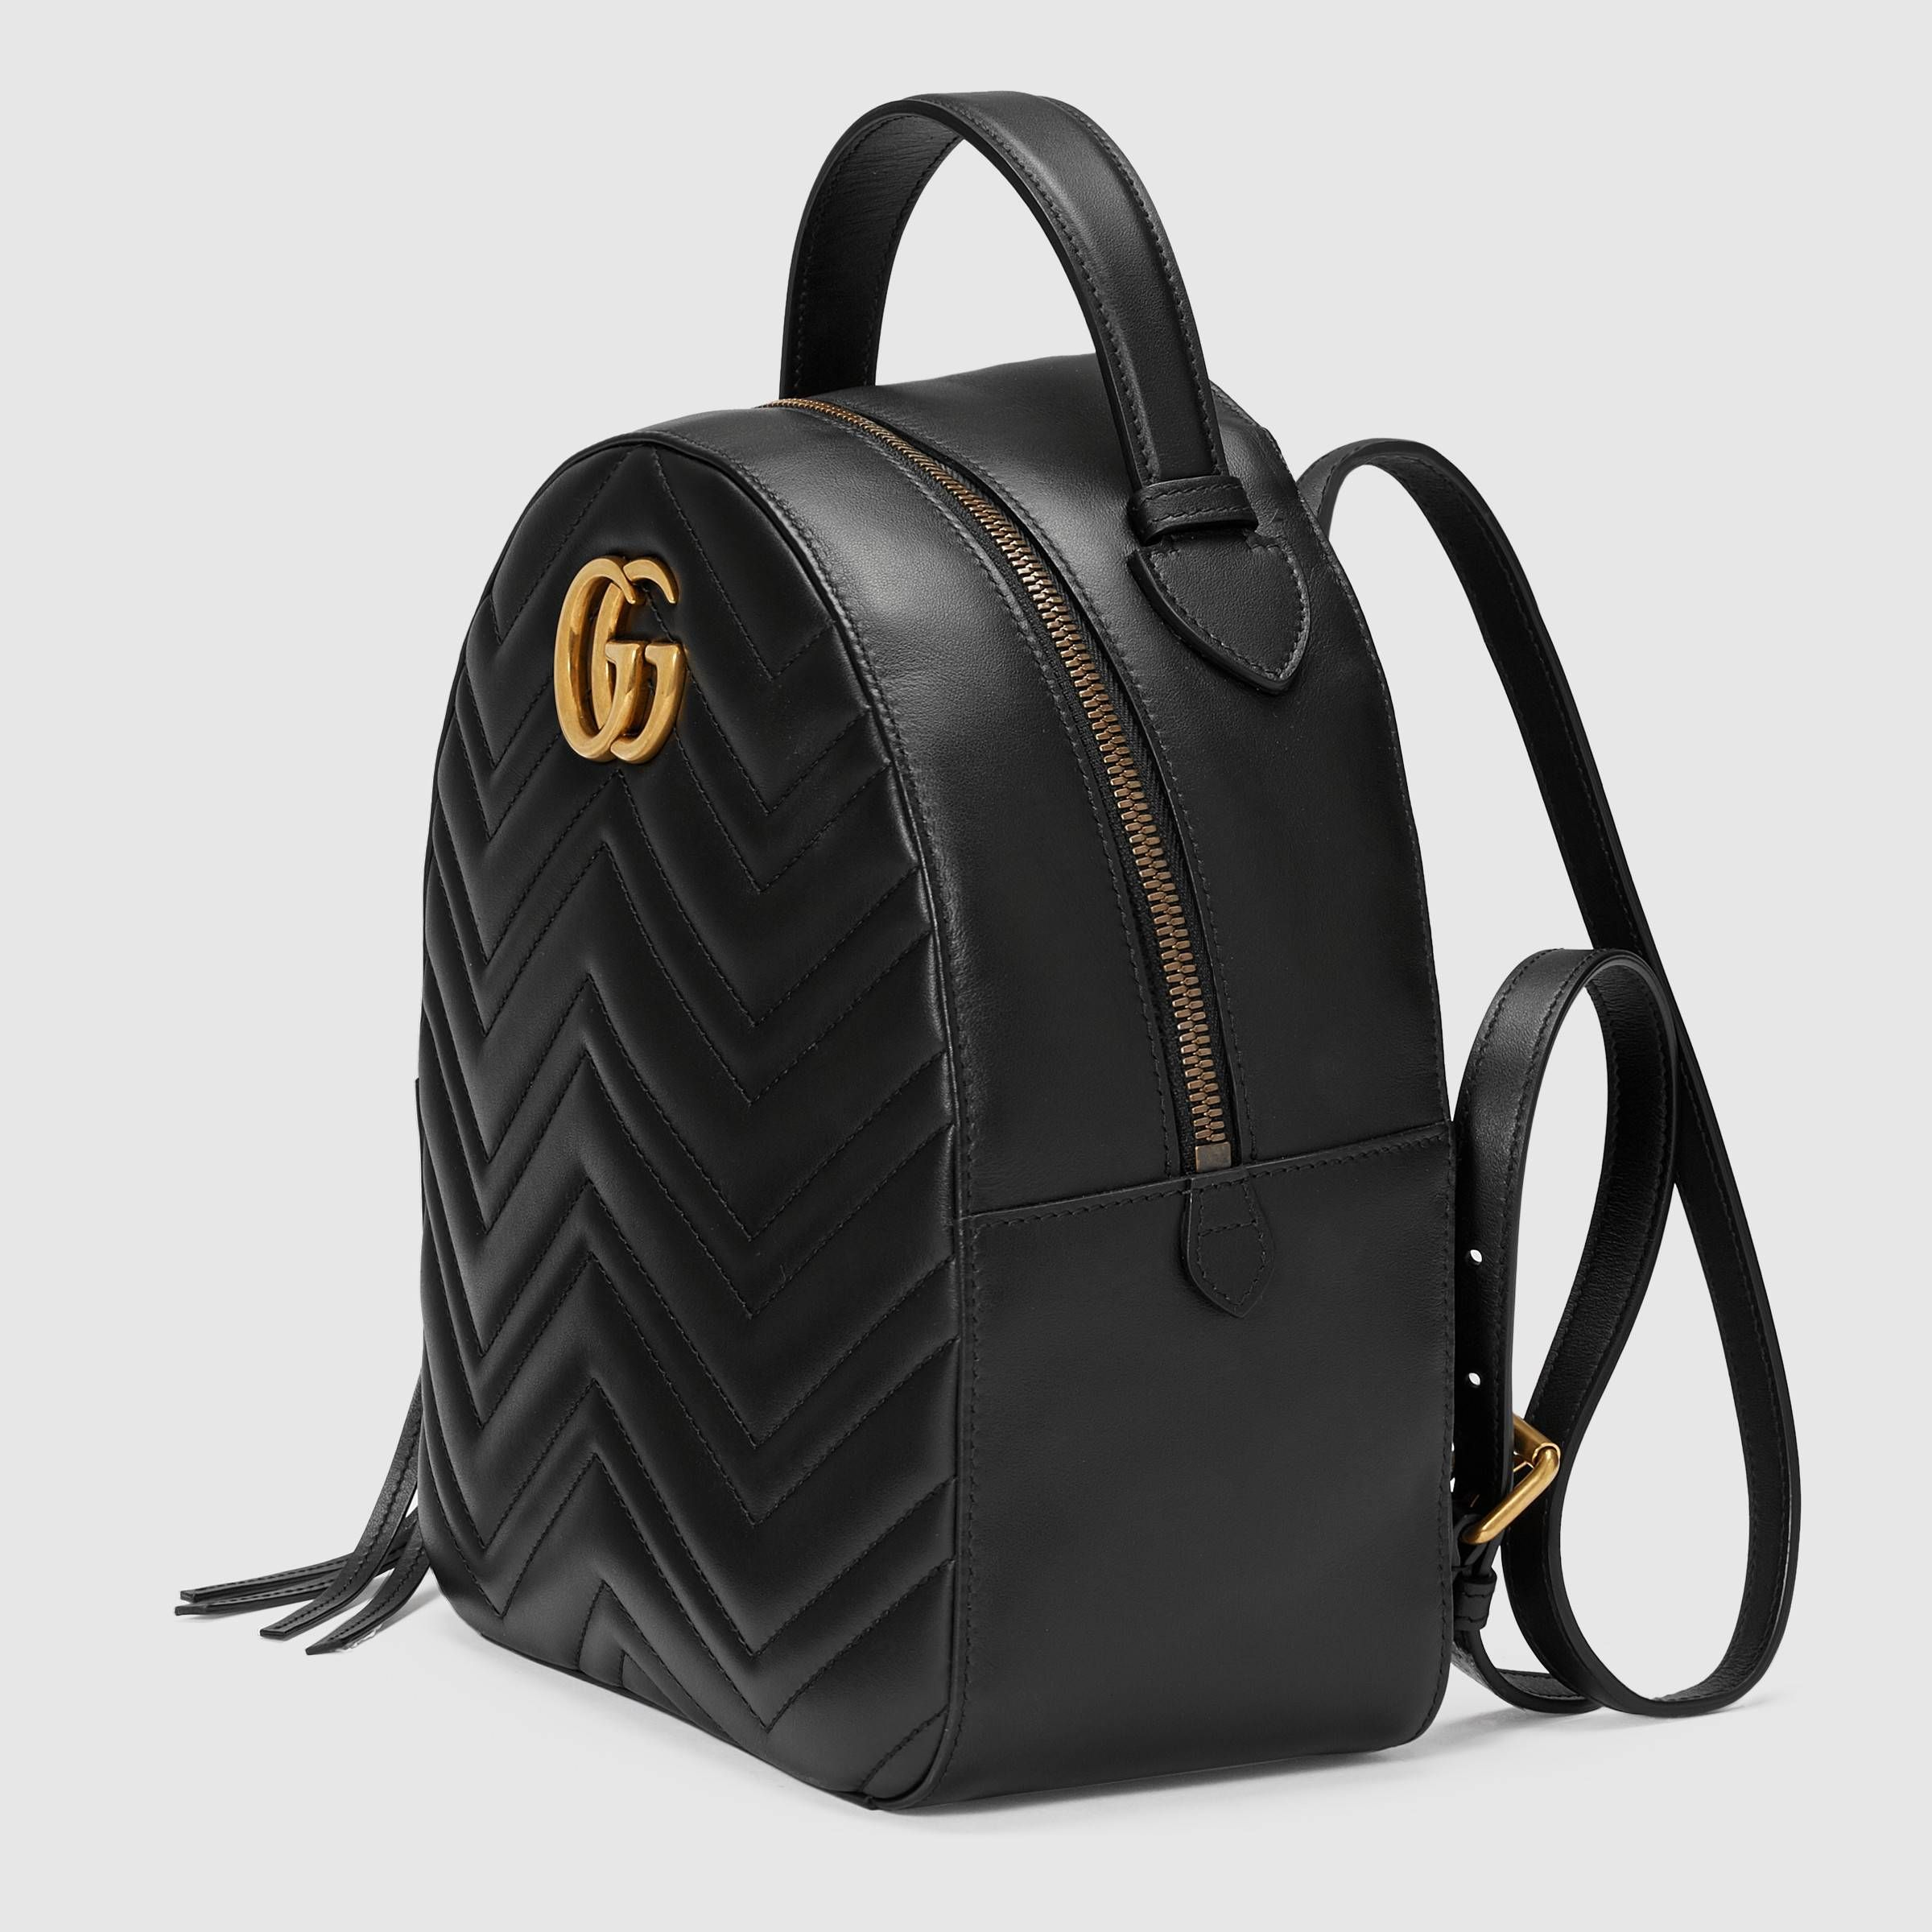 156fdaf4299b GG Marmont quilted leather backpack in Black quilted leather